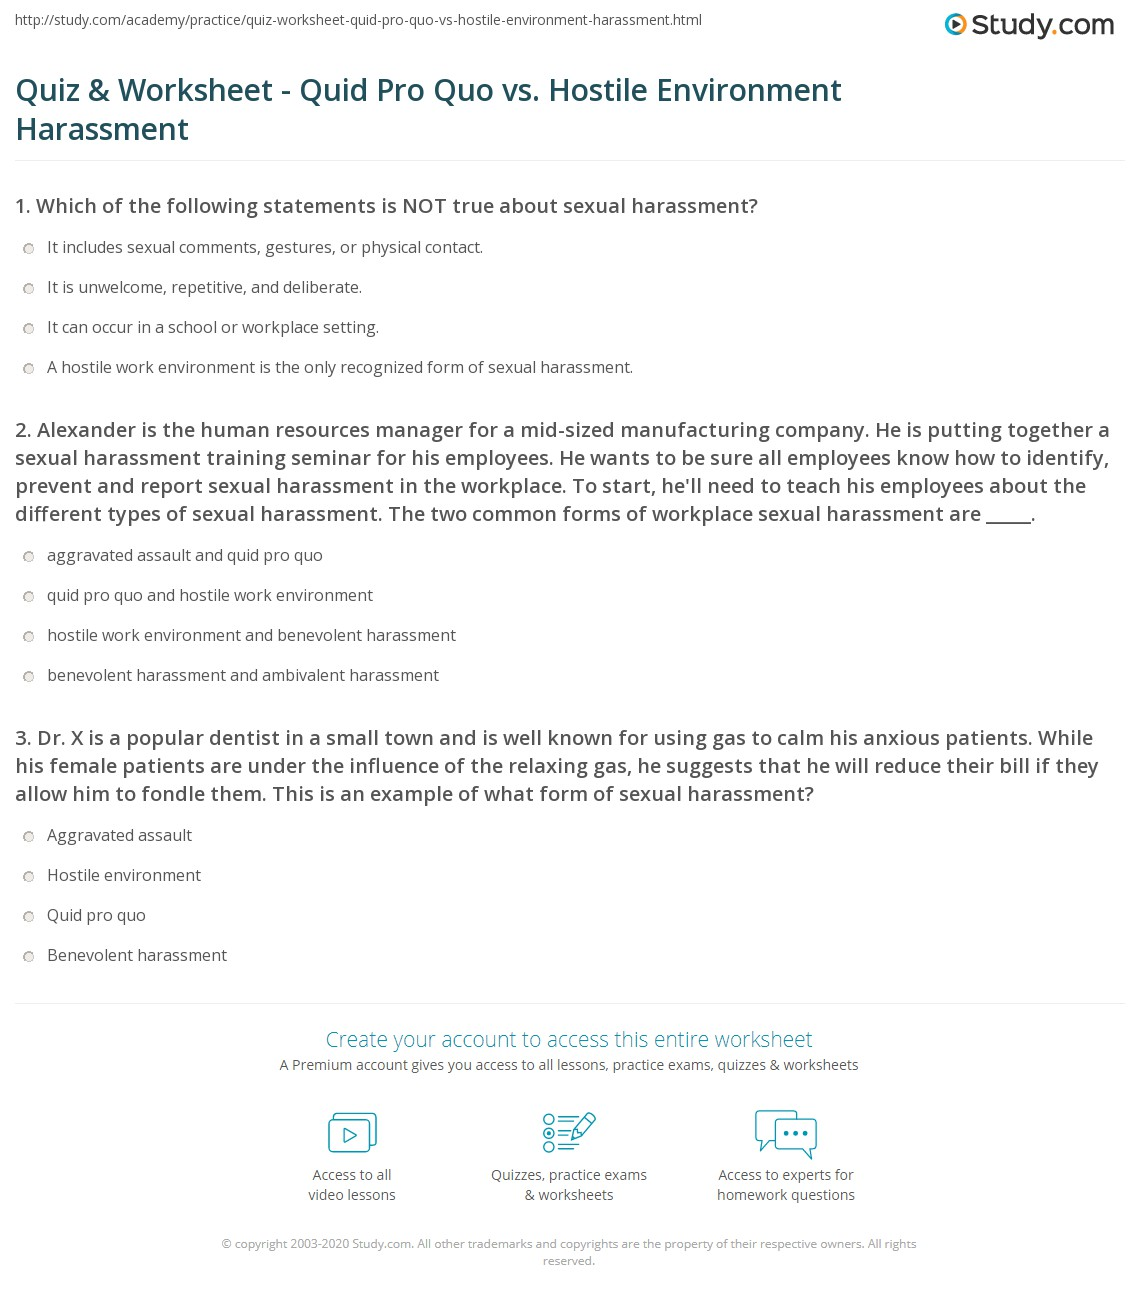 Sexual harassment quid pro quo and hostile environment meaning